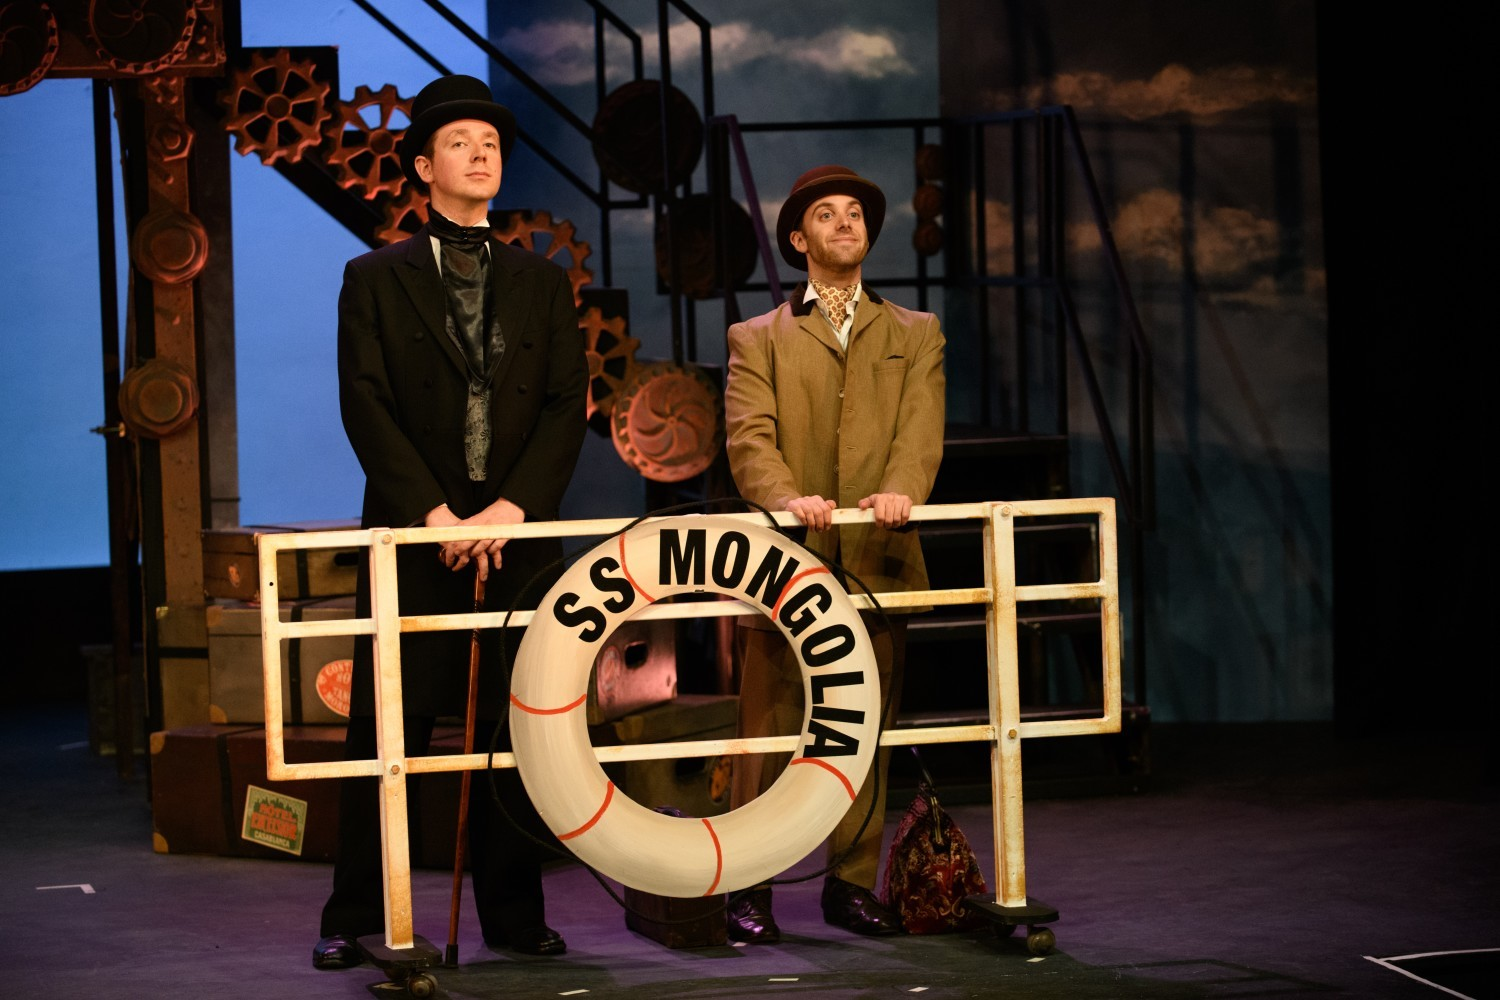 Jamie Sloan as Phileas Fogg and Tim Cooper as Passepartout in Around the World in 80 Days at the Garrick Playhouse.